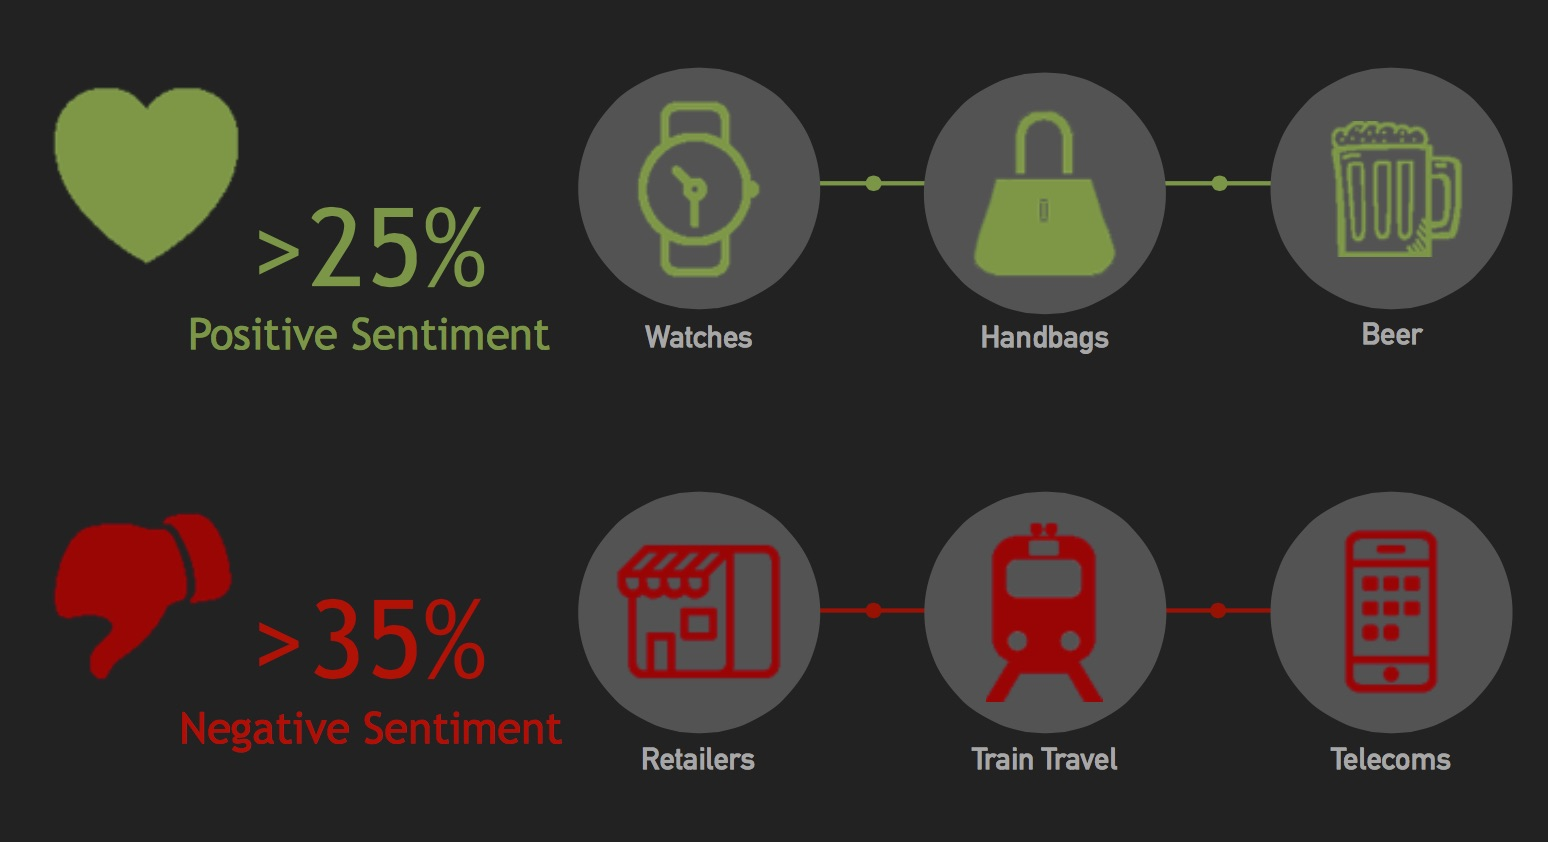 Sentiment on Social Media Across Product Categories